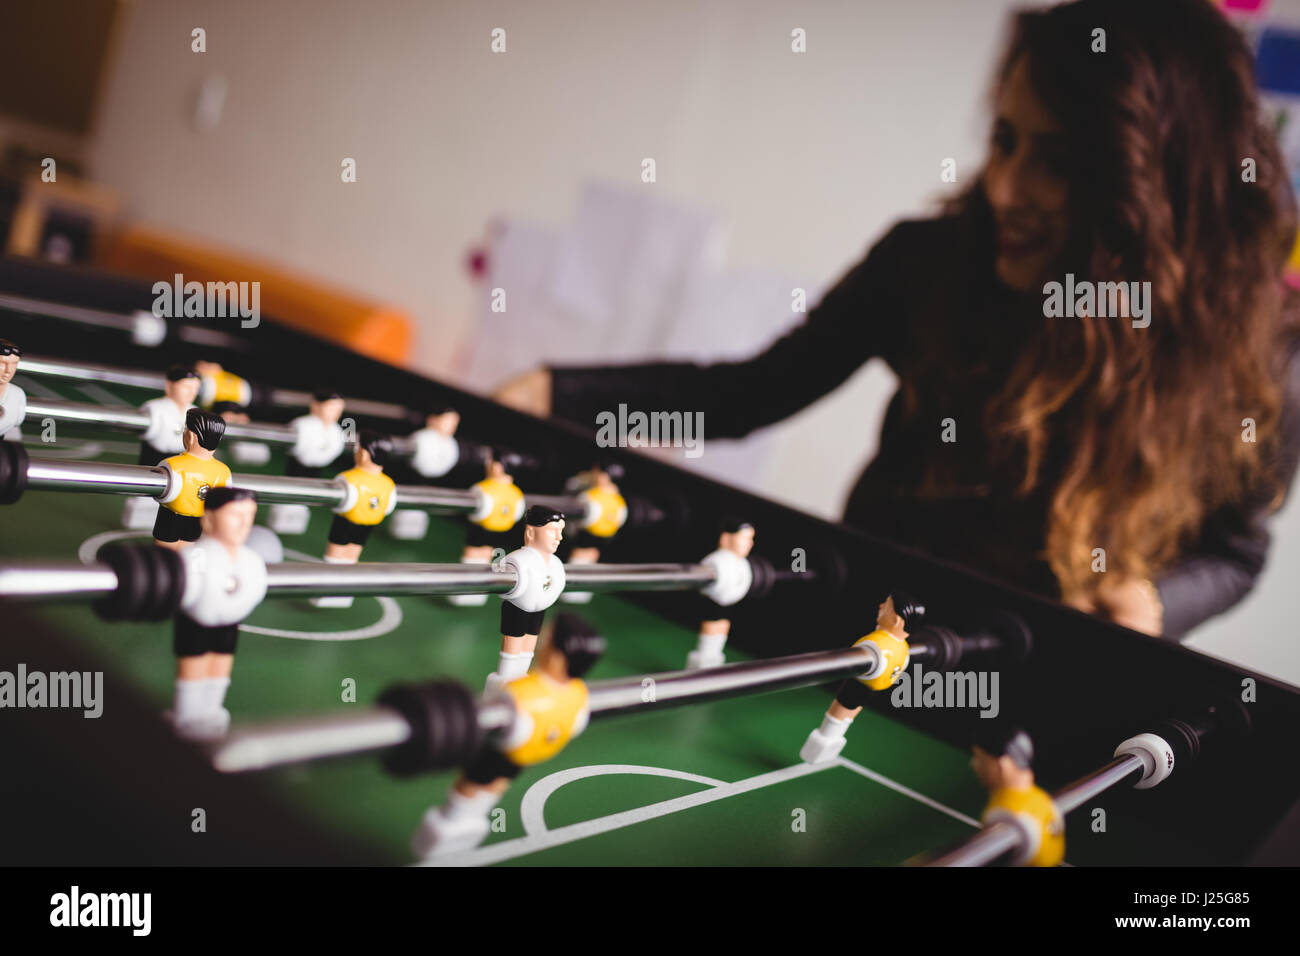 Concentrated woman playing table football game - Stock Image